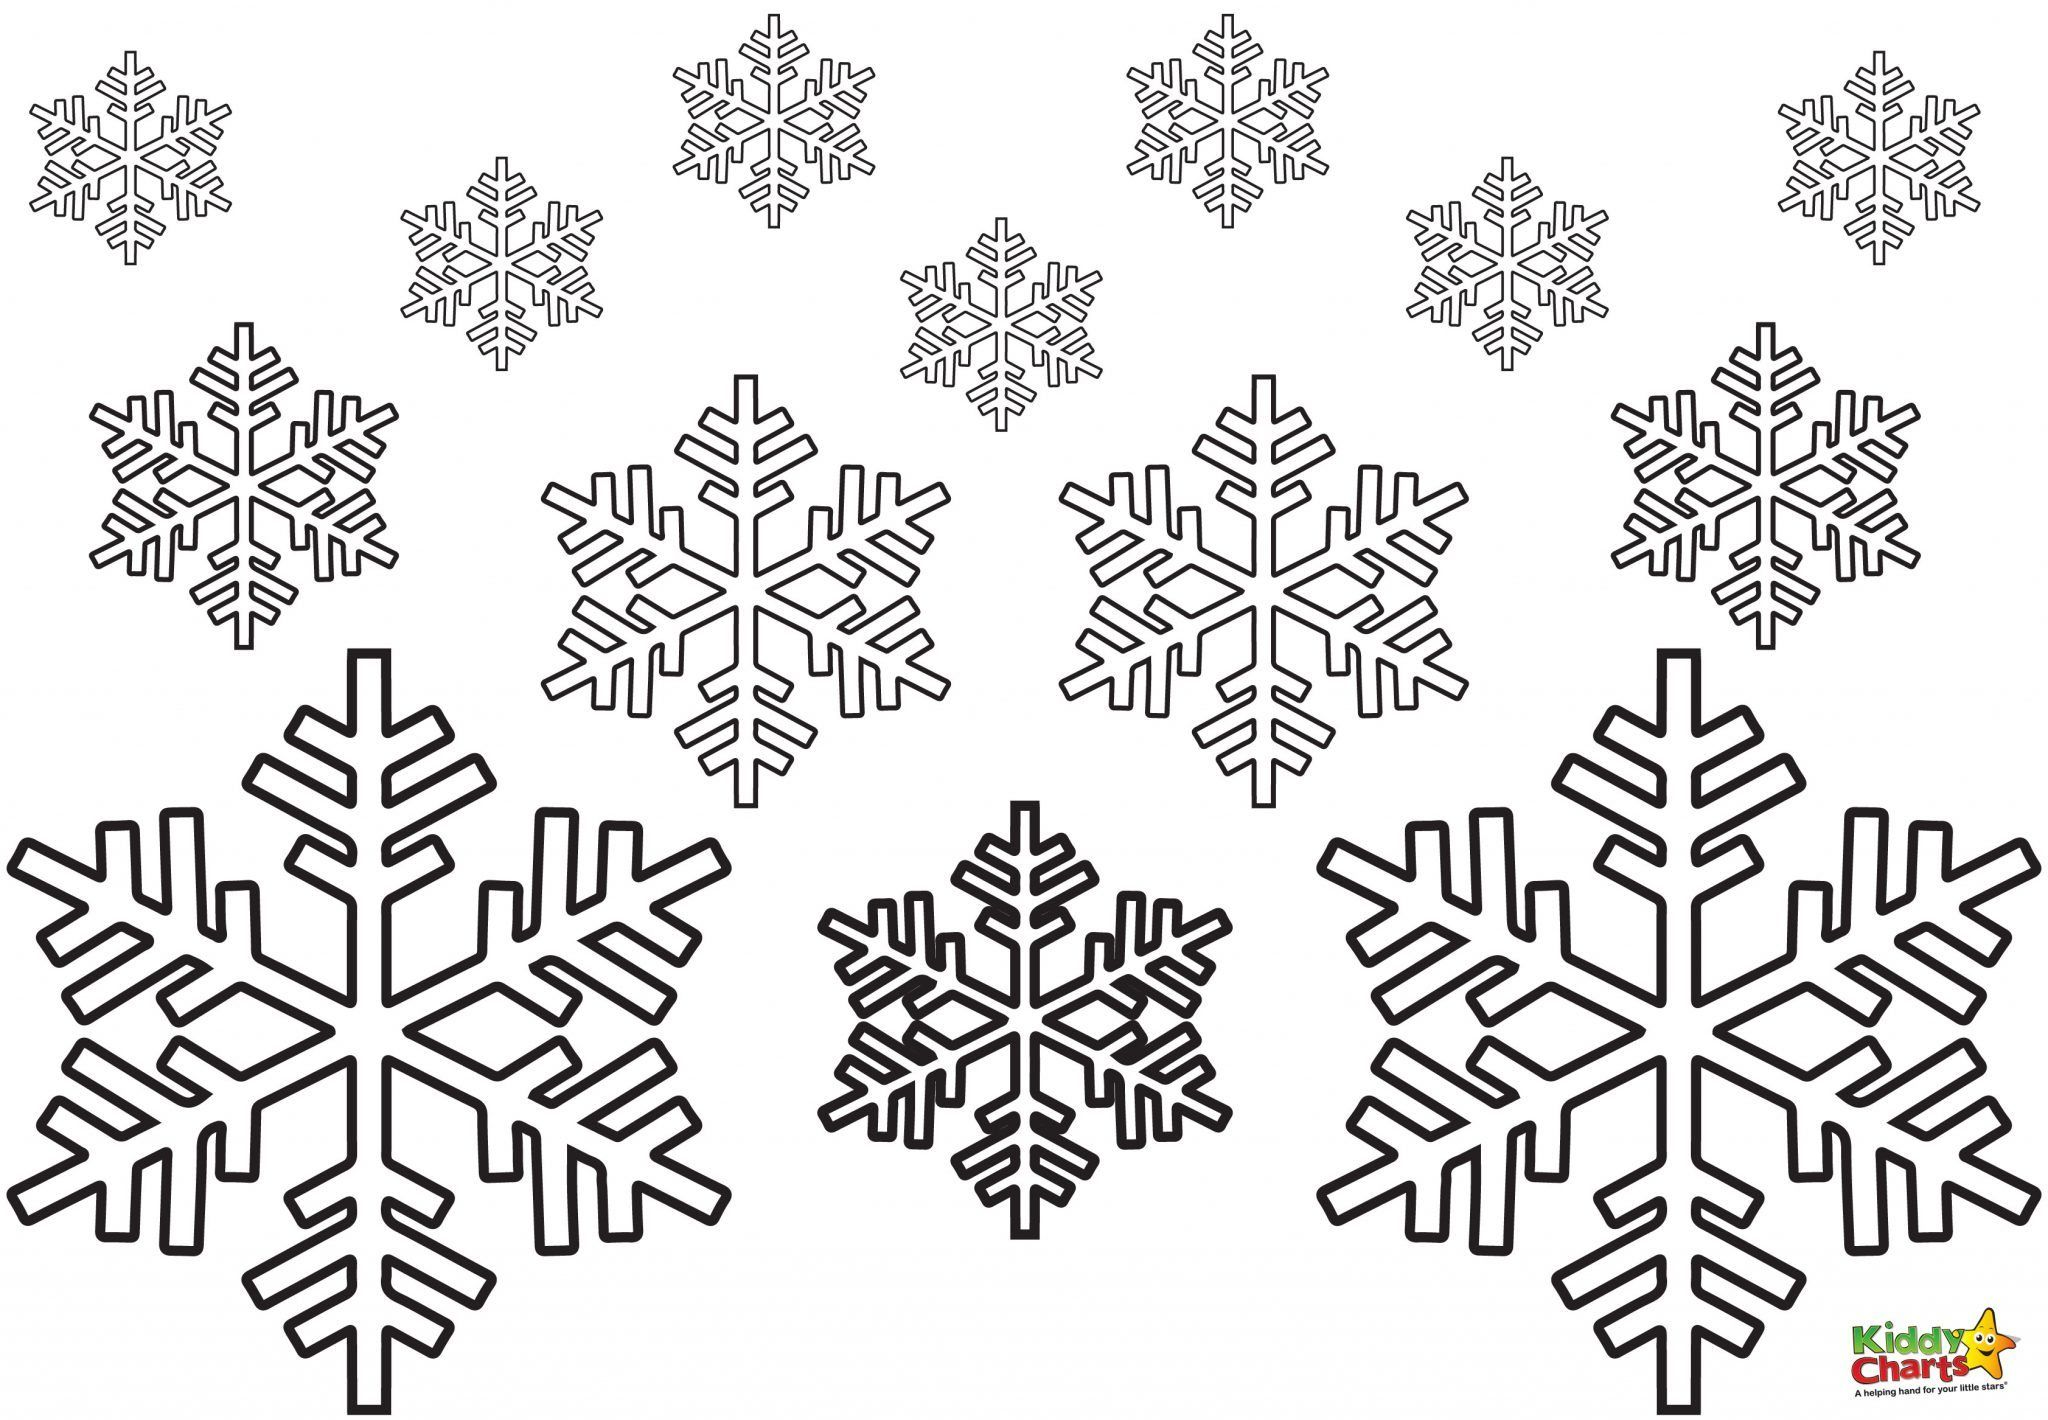 Free Printables Coloring Pages For Kids Kiddycharts Com Snowflake Coloring Pages Printable Christmas Coloring Pages Cool Coloring Pages